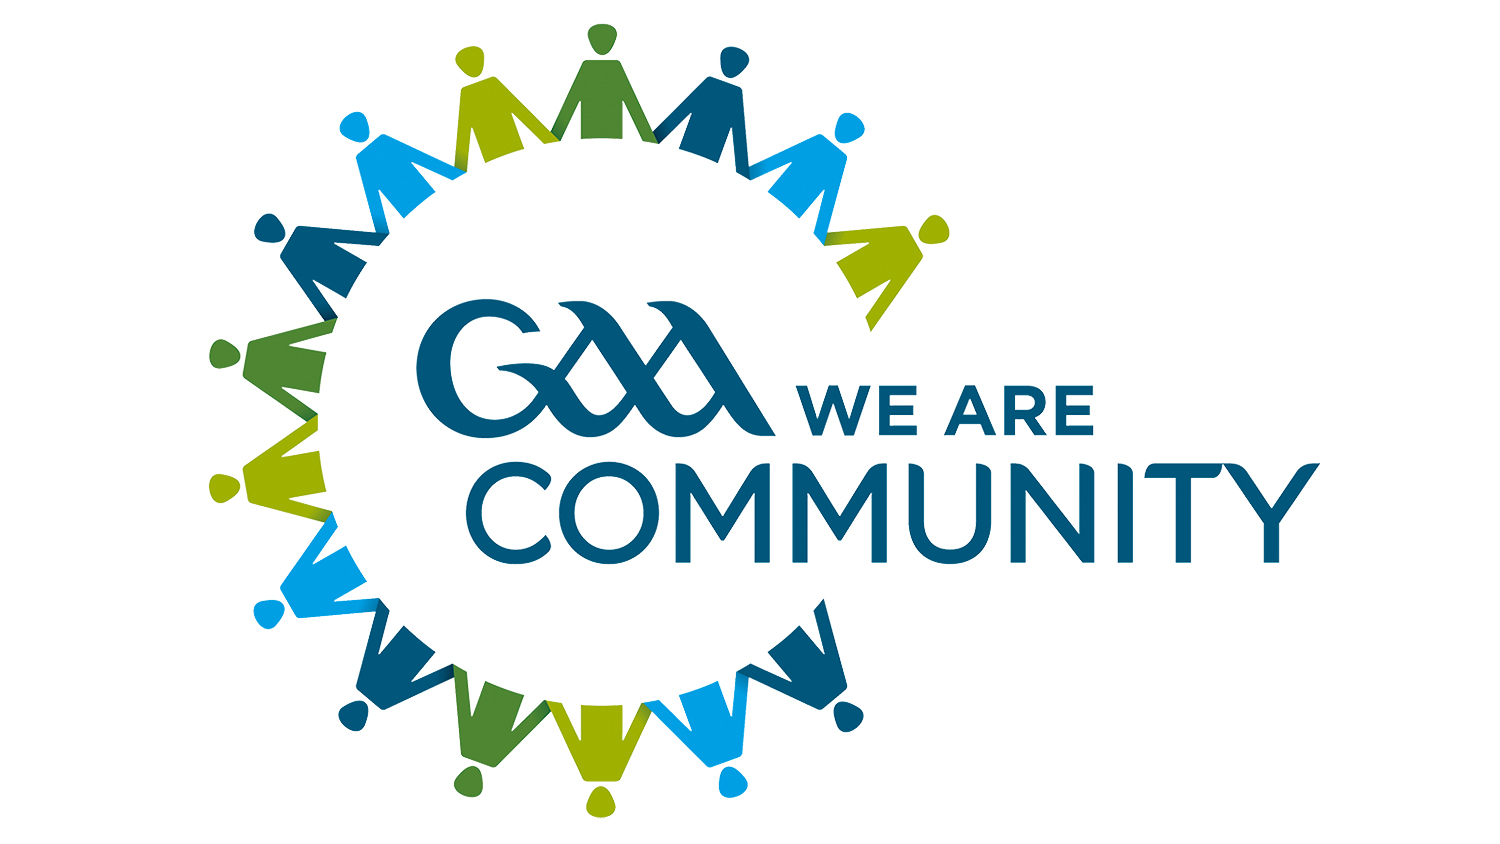 GAA community and health logo